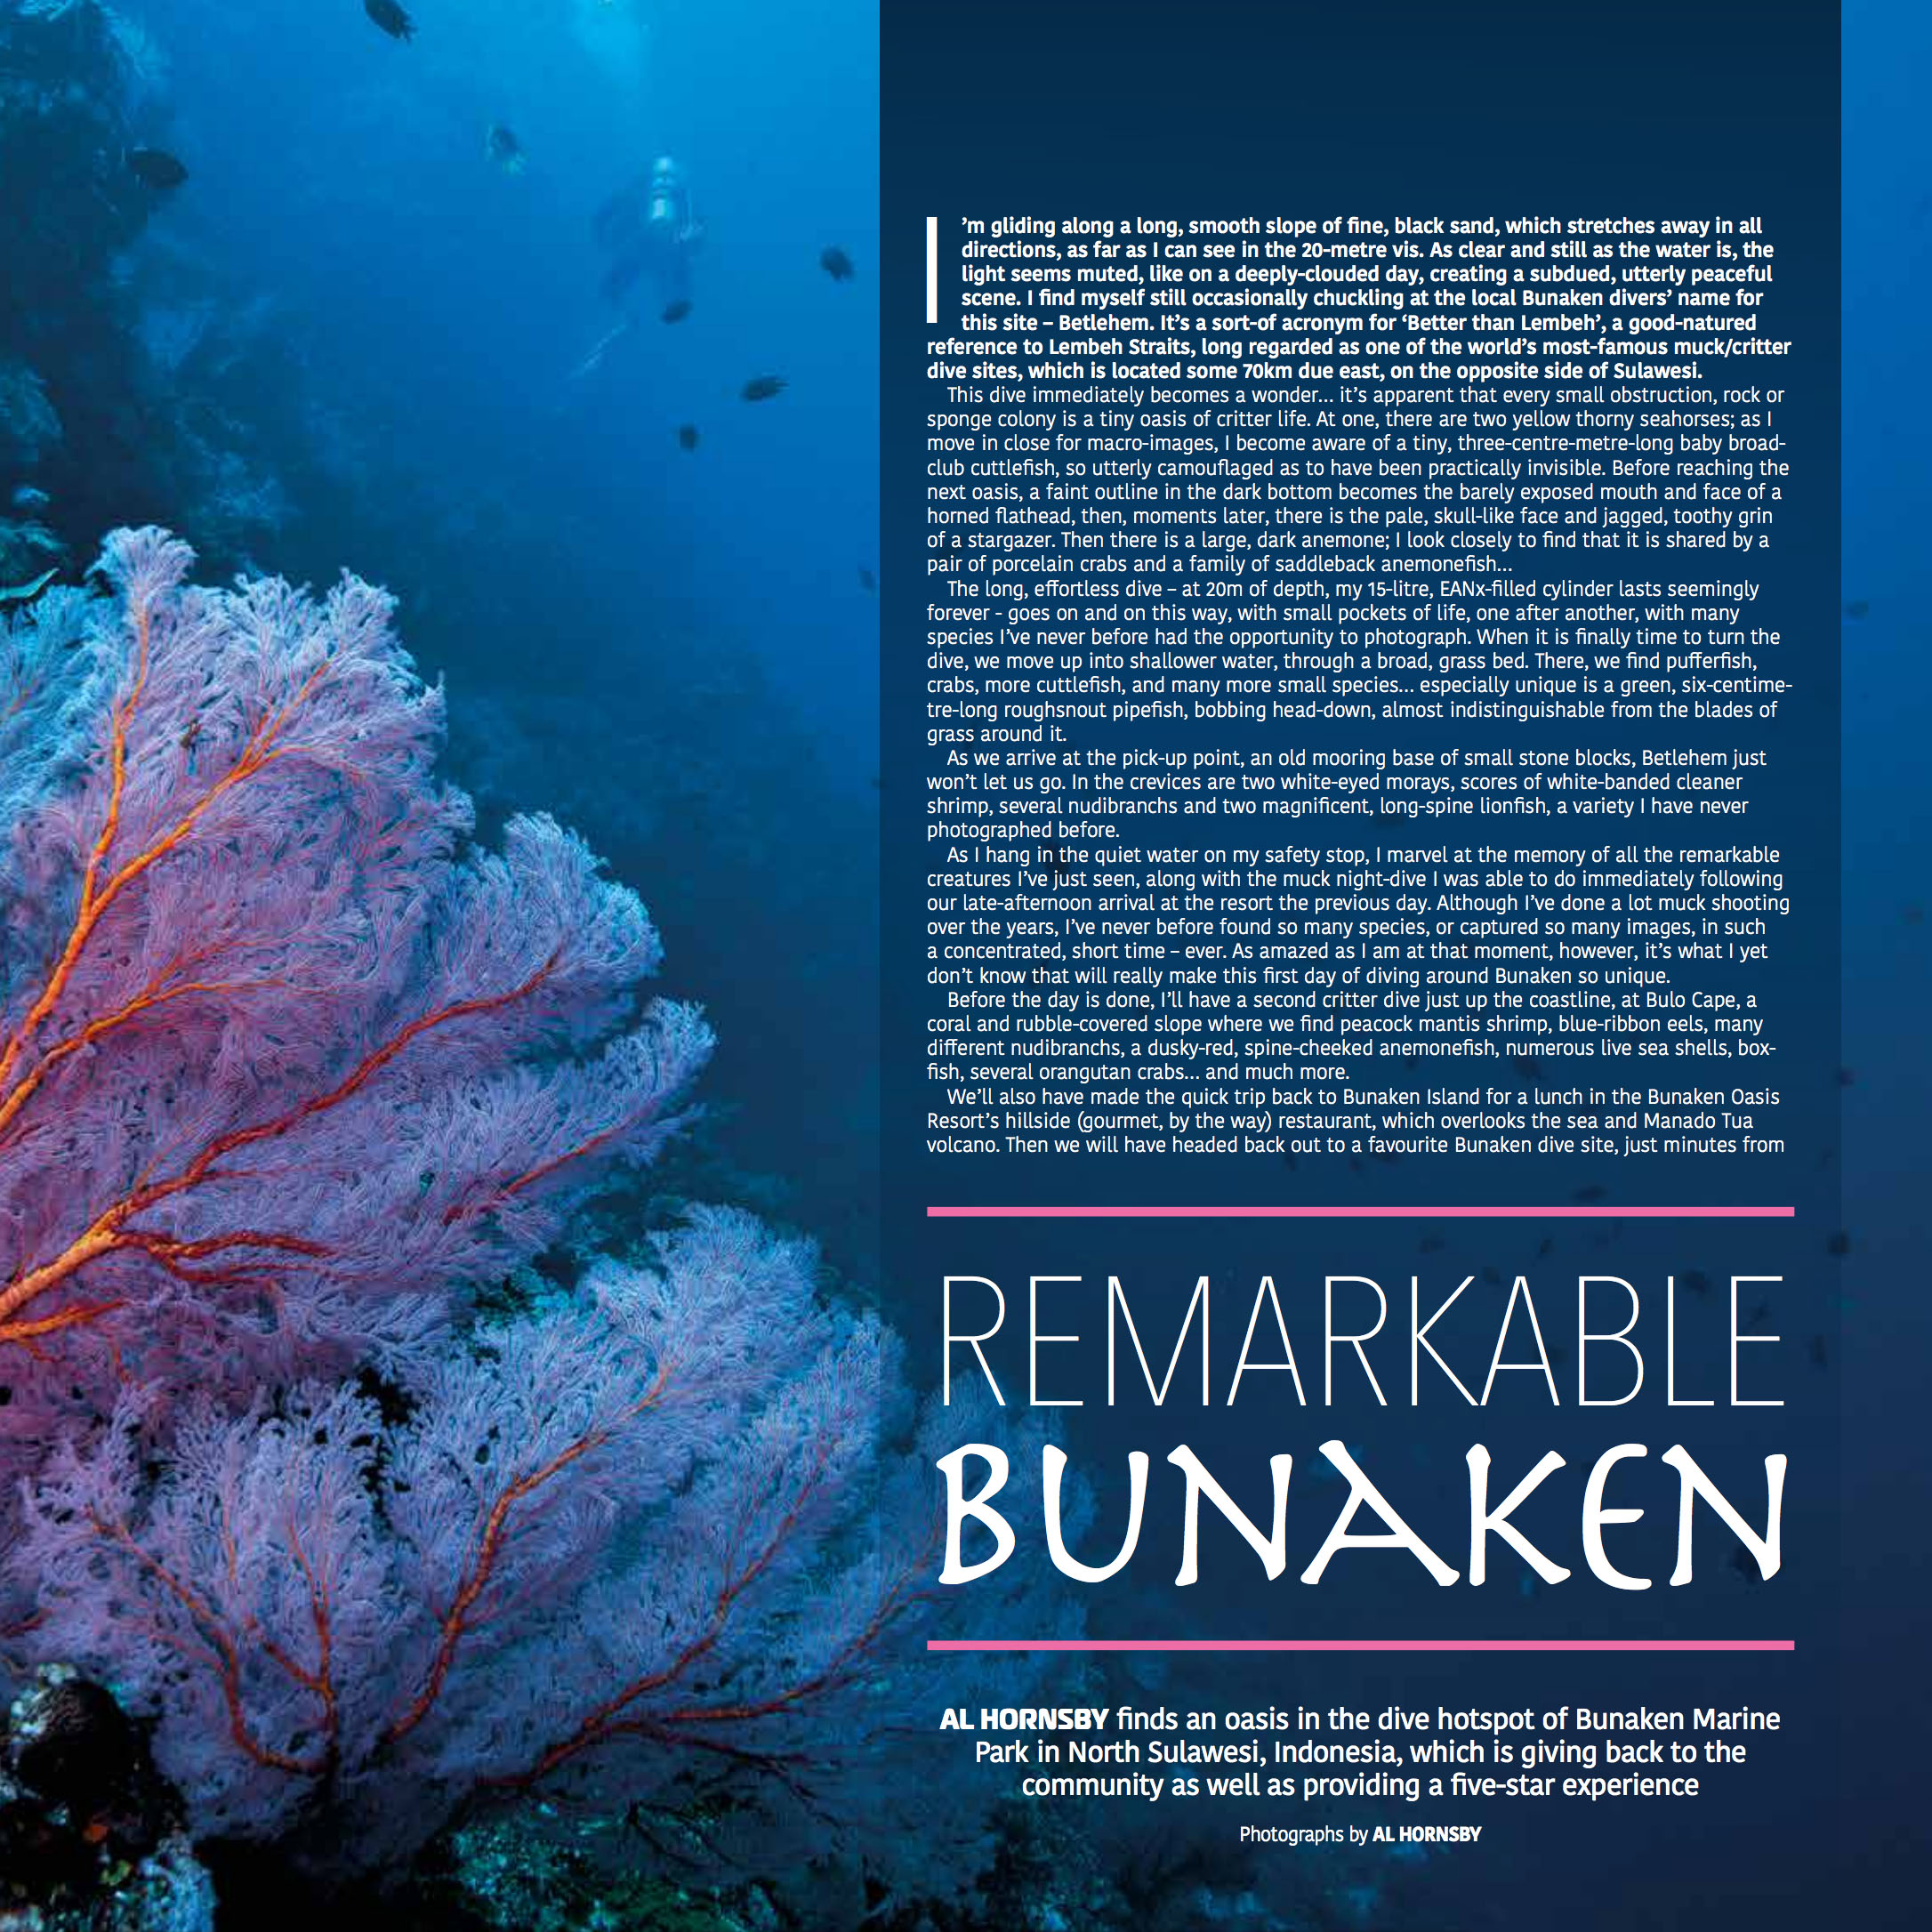 Article by Al Hornsby reprinted courtesy of Scuba Diver magazine